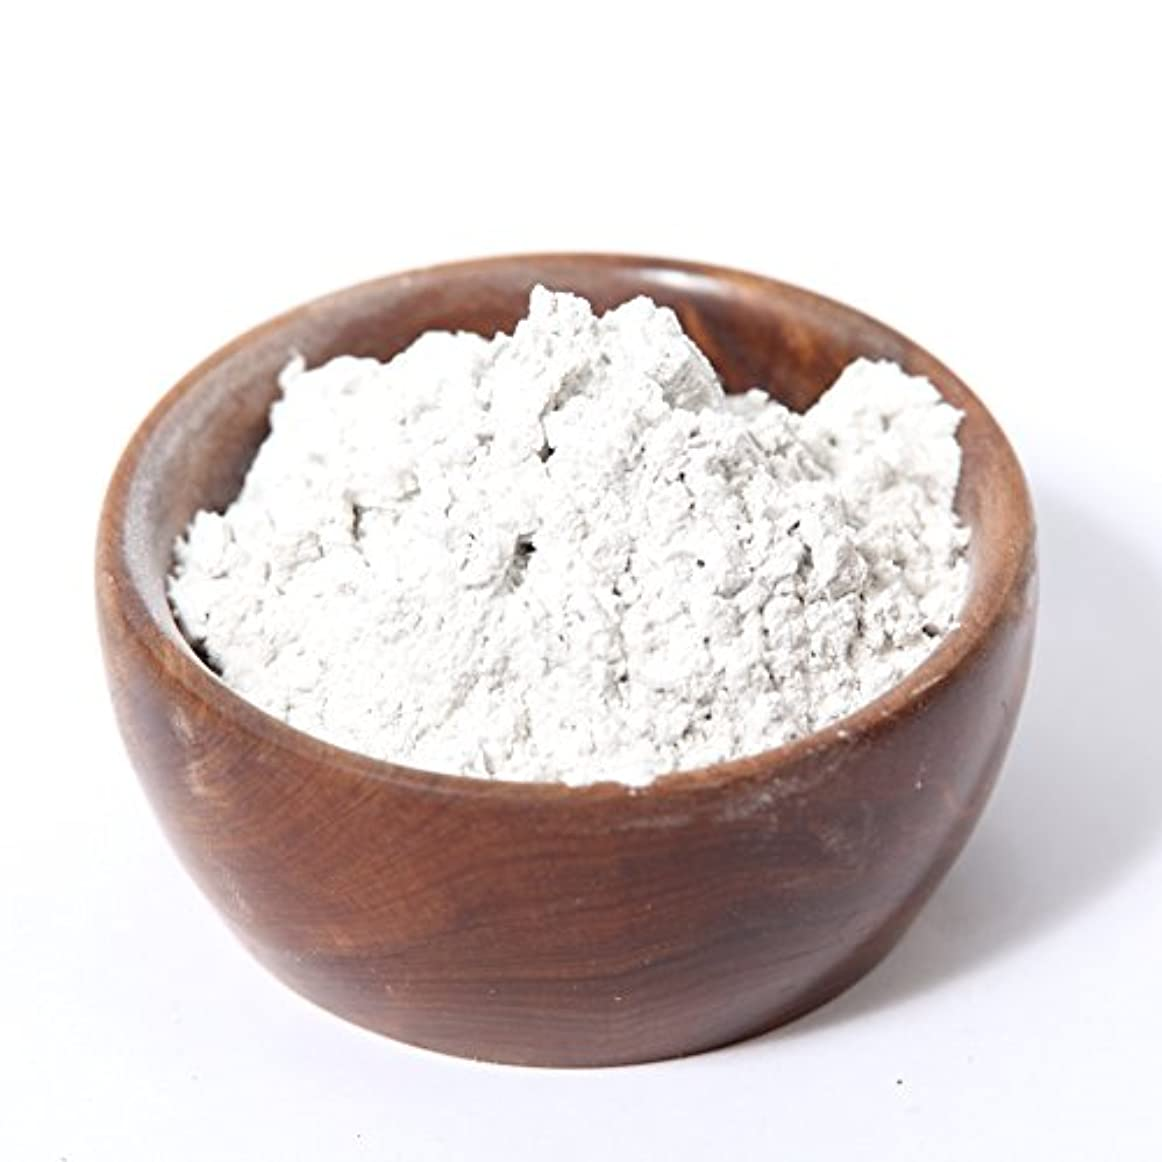 口ひげ収束する言い換えるとPumice Stone Superfine For Face Exfoliant 500g